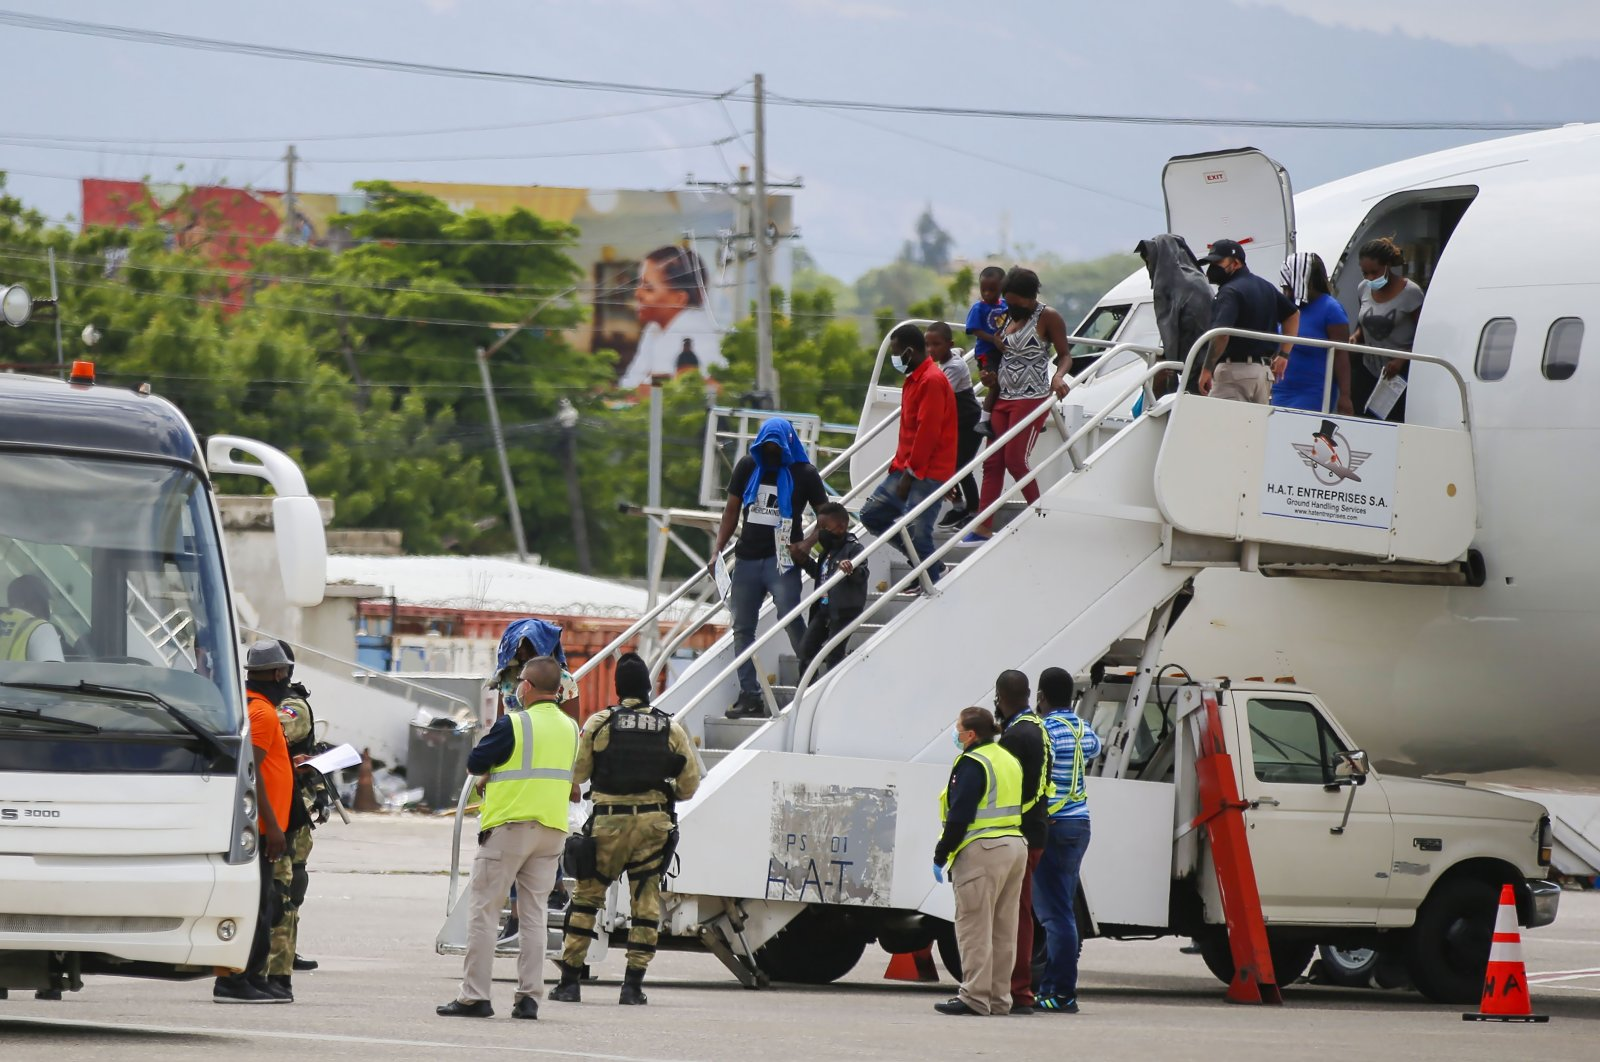 Haitians who were deported from the United States deplane at the Toussaint Louverture International Airport, in Port au Prince, Haiti, Sept. 19, 2021. (AP Photo)